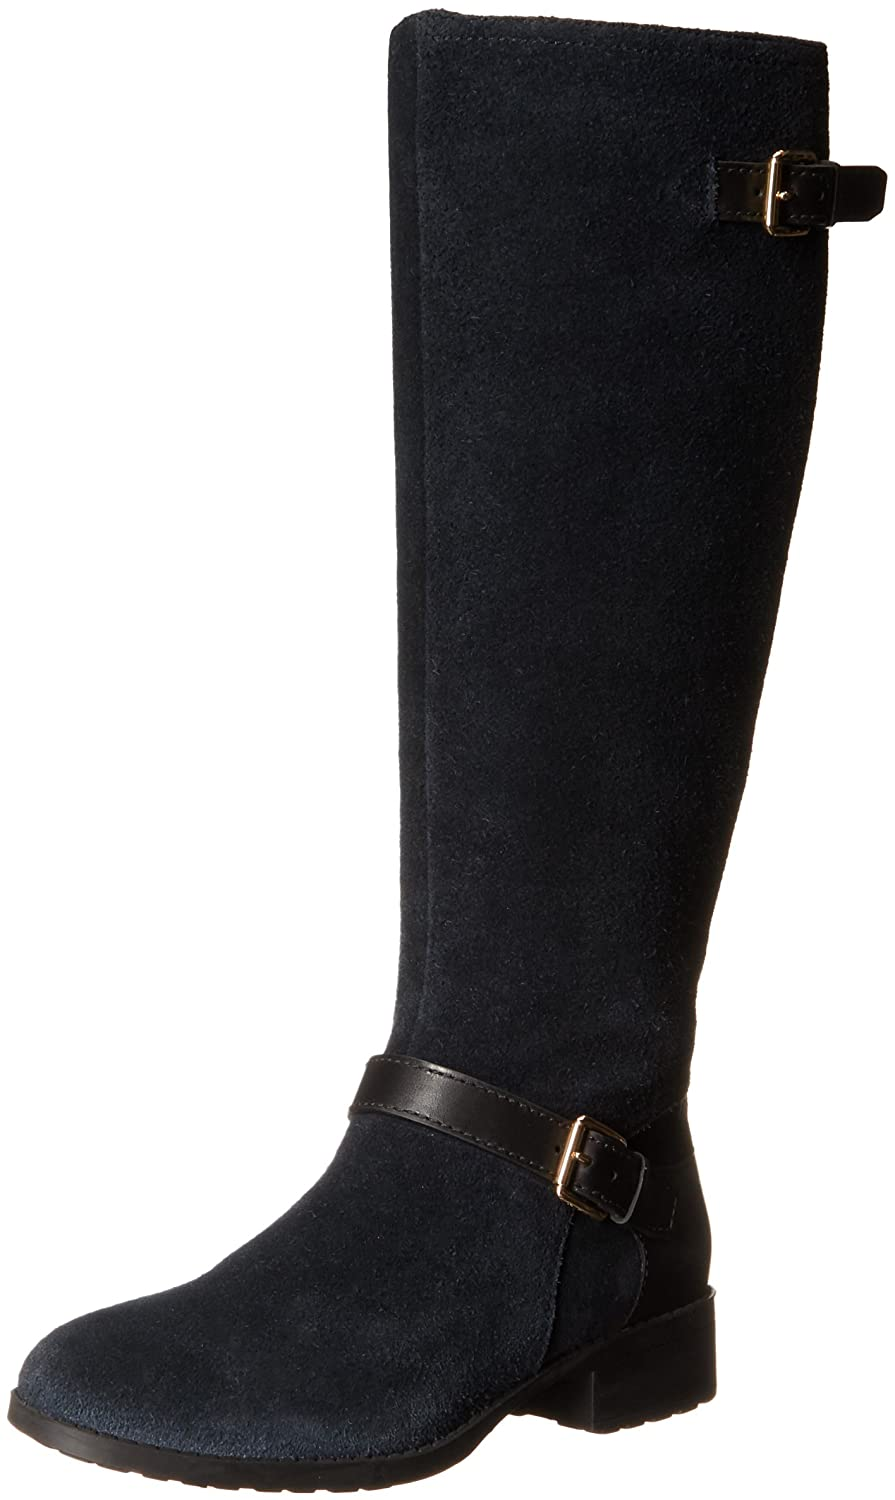 Cole Haan Women's Marla Wp Motorcycle Boot B00AJ9P2XW 7.5 B(M) US Black Wp Suede/Black Leather